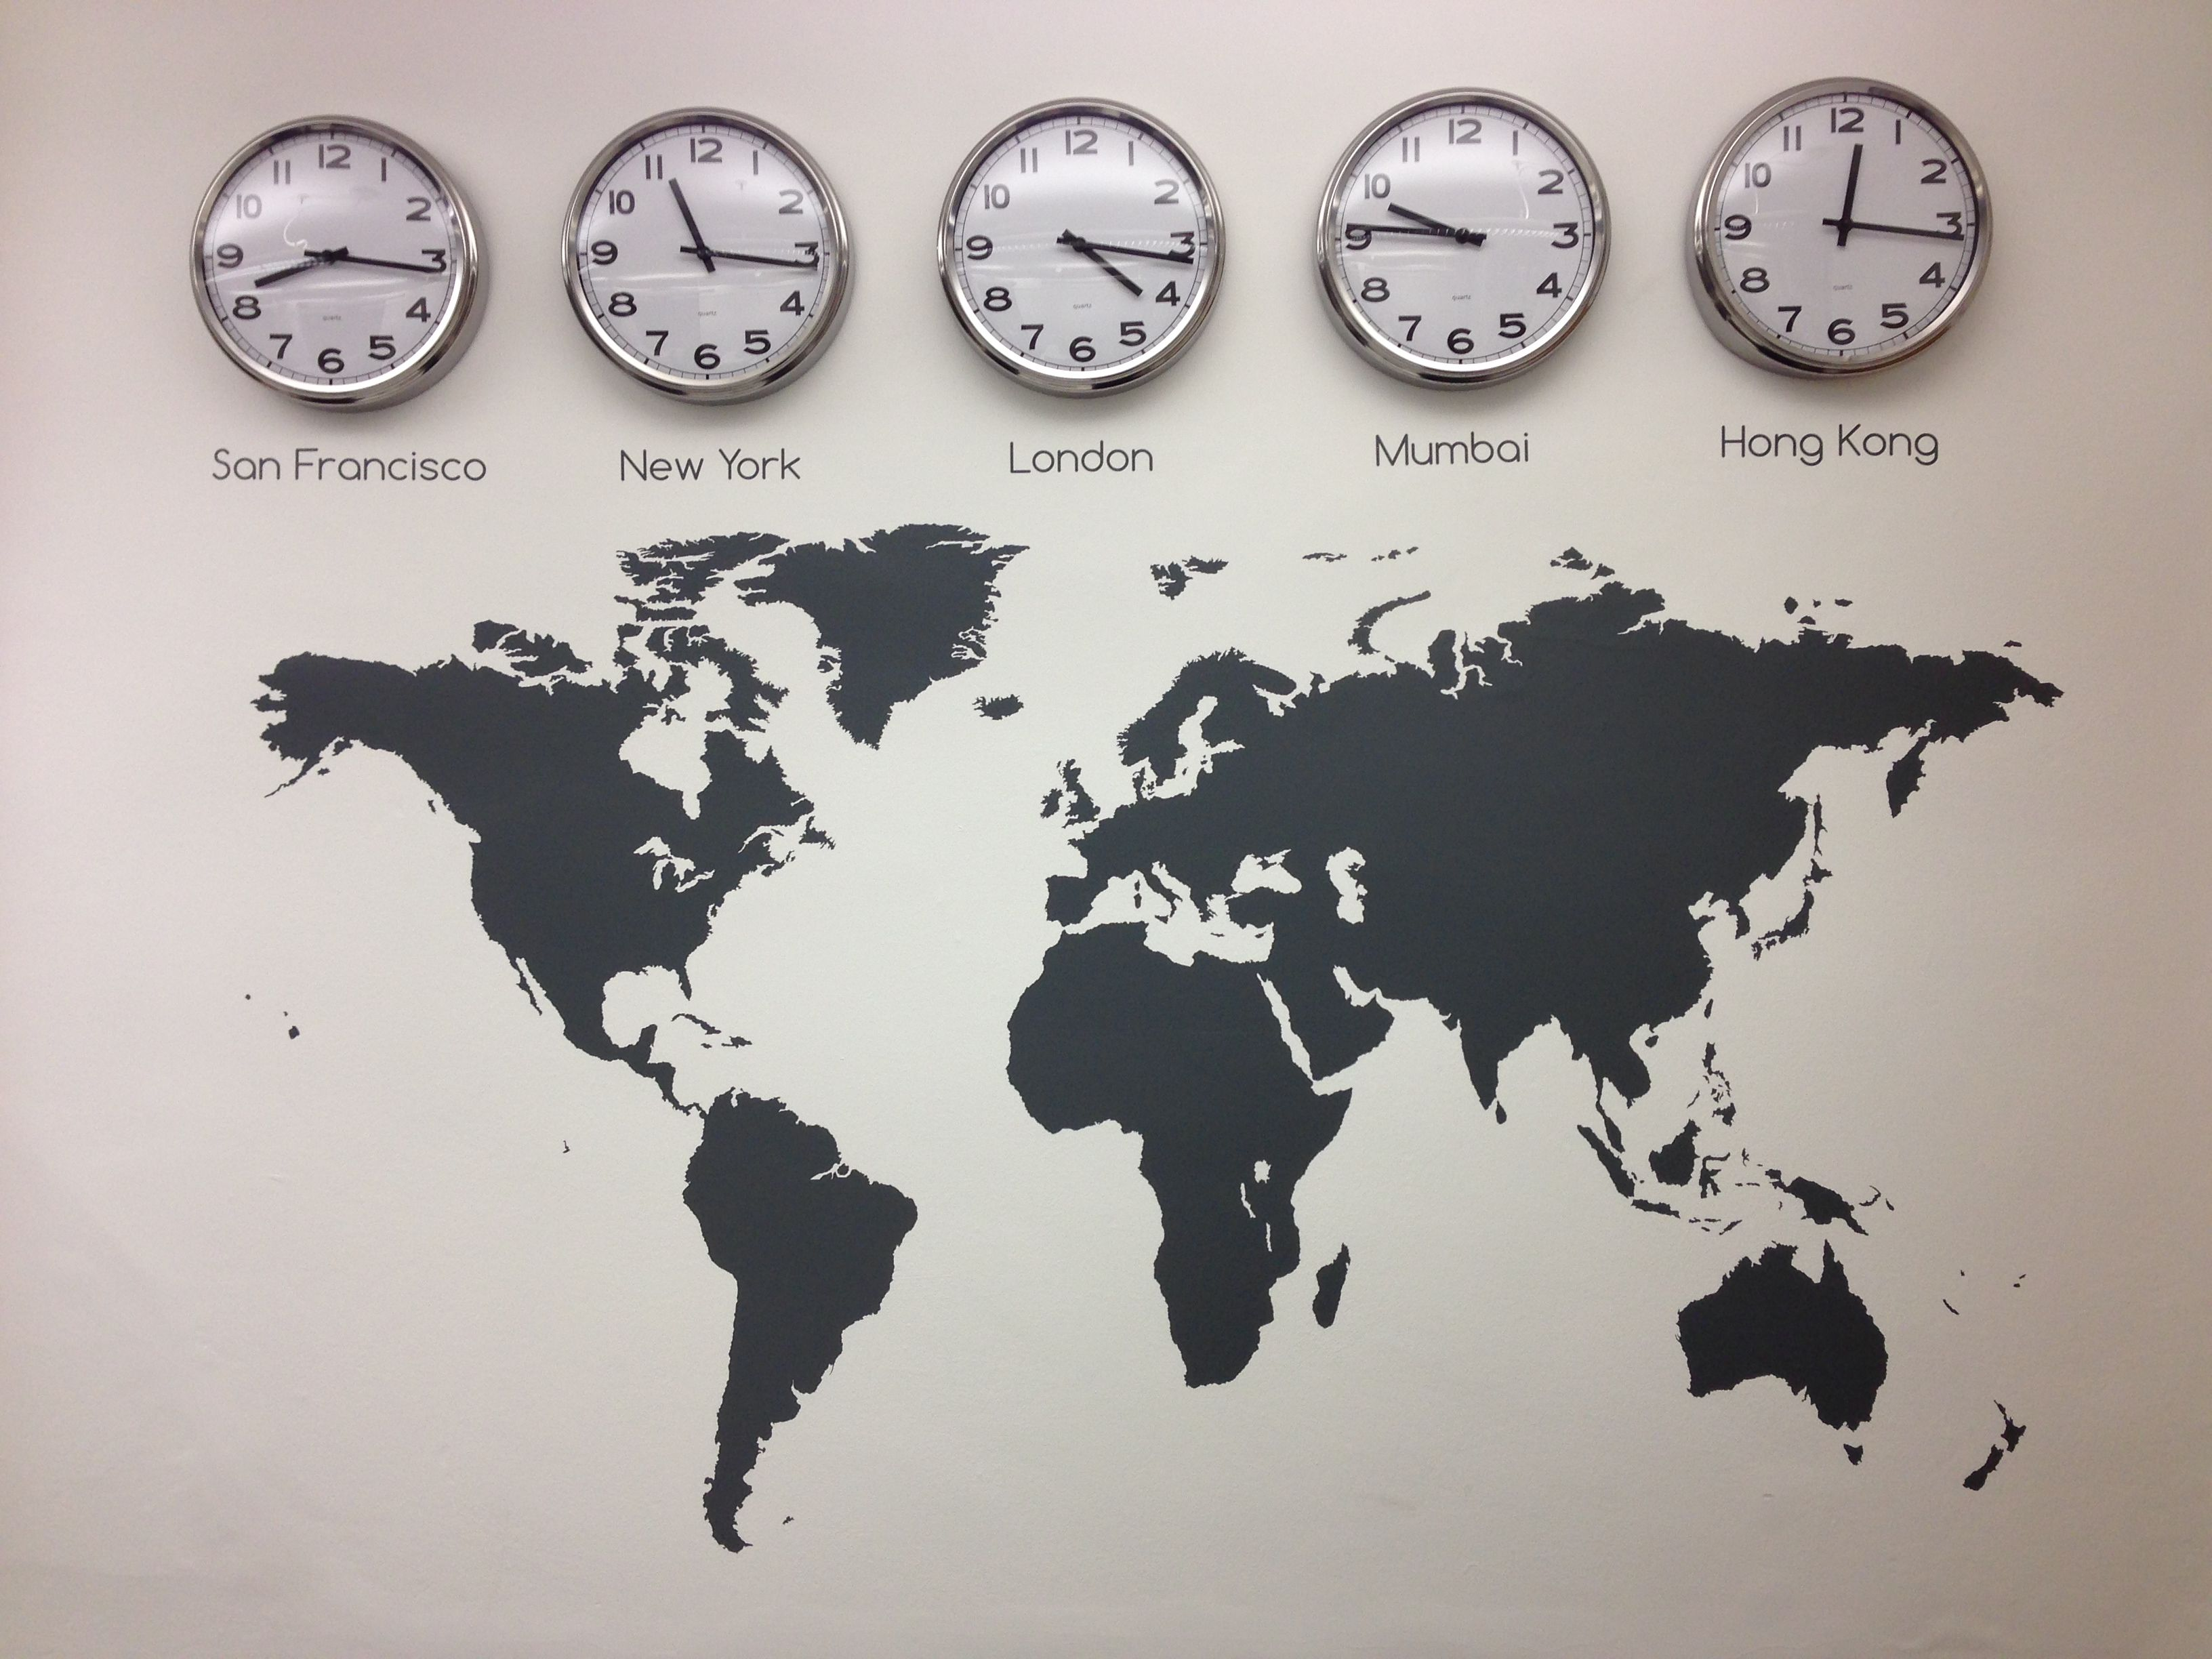 World map vinyl wall sticker pinterest time zones clocks and vinylimpression why not mix our map with some clocks to show different time zone that reflect your business decals and graphics gumiabroncs Gallery